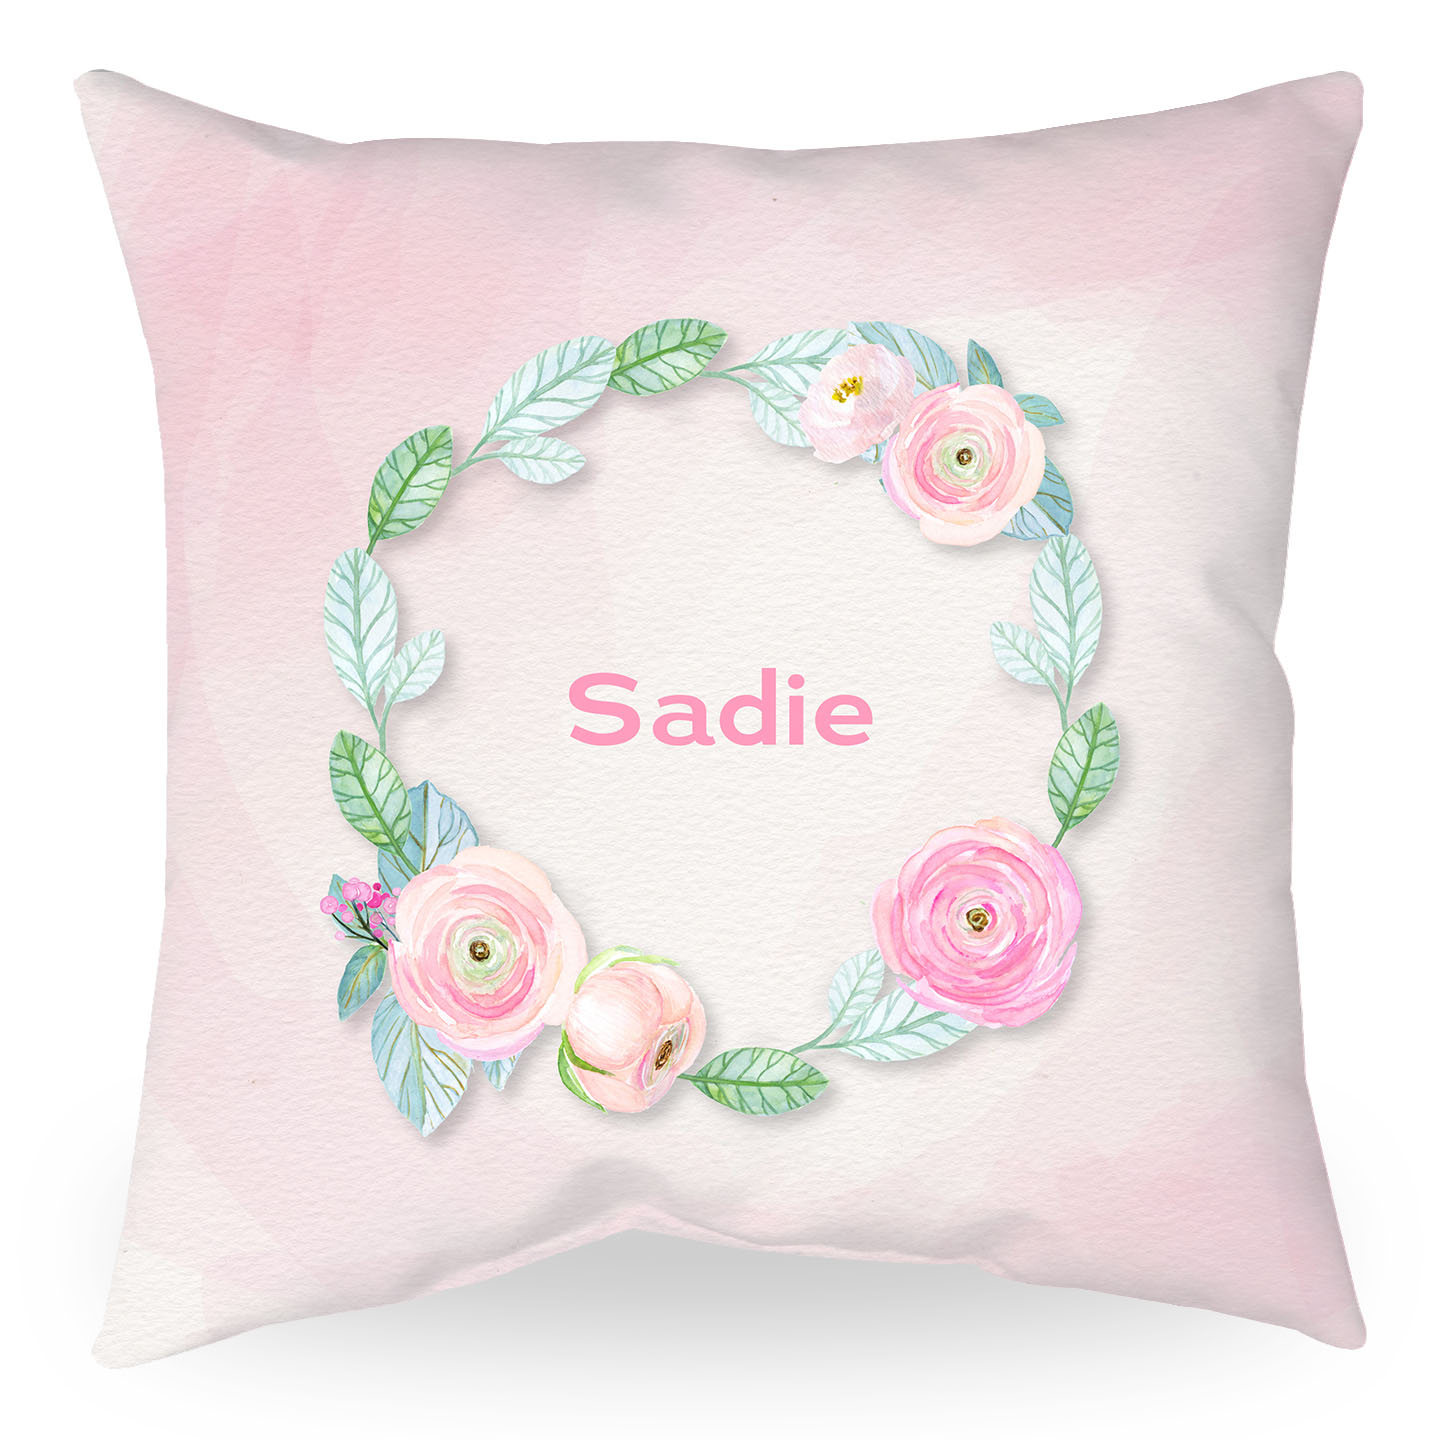 Sweet Flowers Throw Pillow with Name in Addison Font